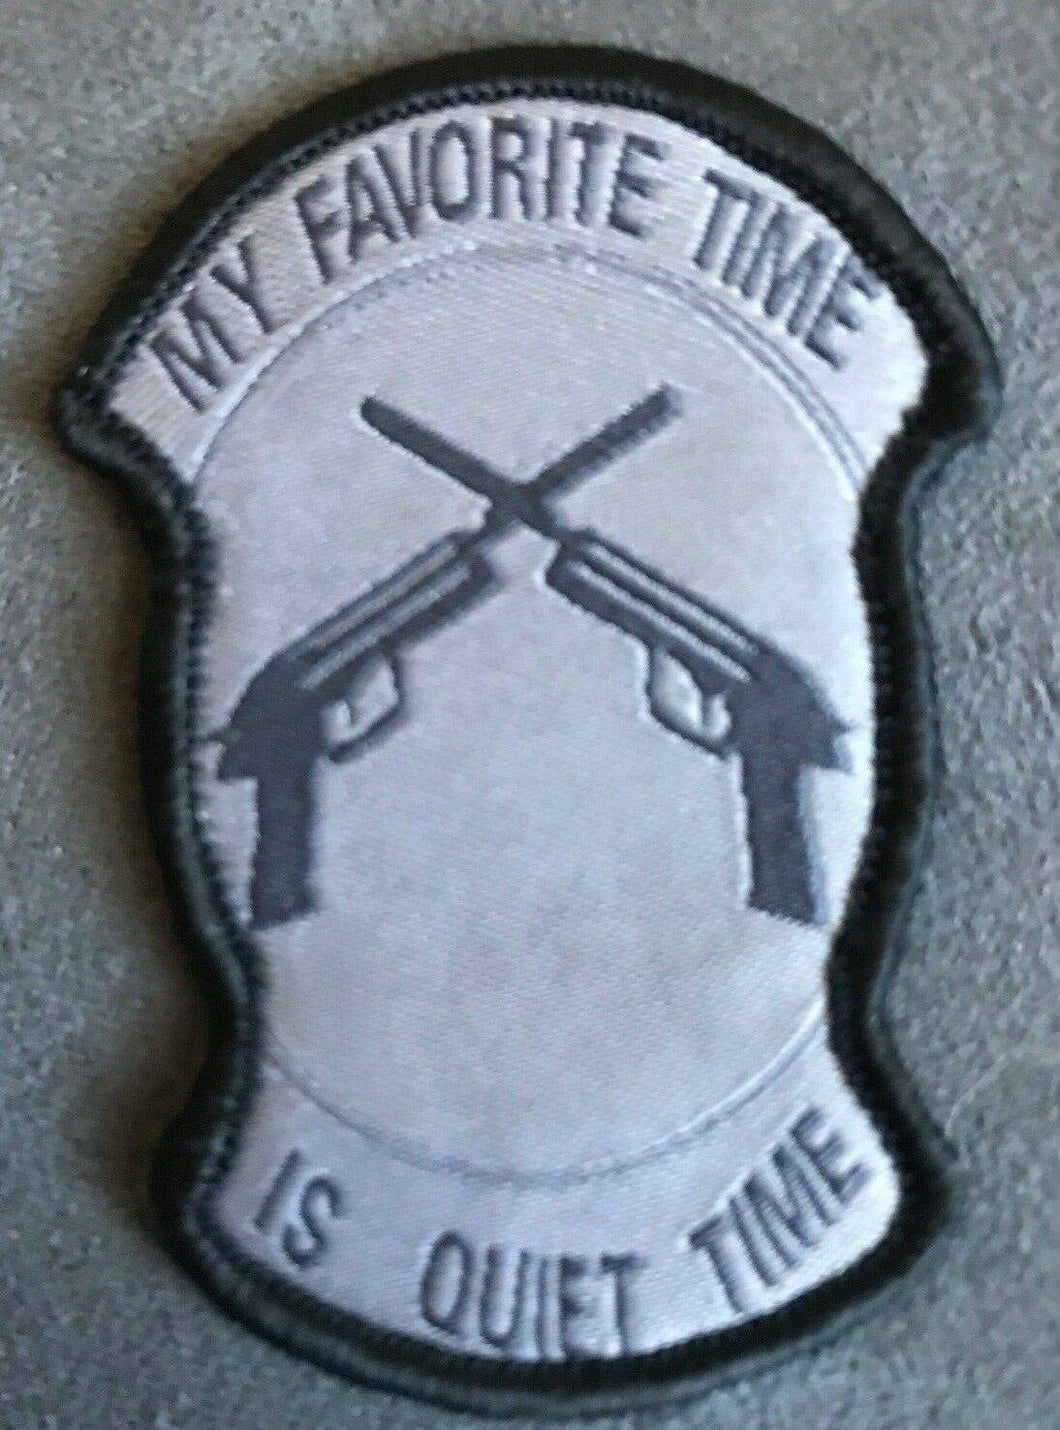 BuckUp Tactical Morale Patch Hook My Favorite Time is Quite Time ACU Patch